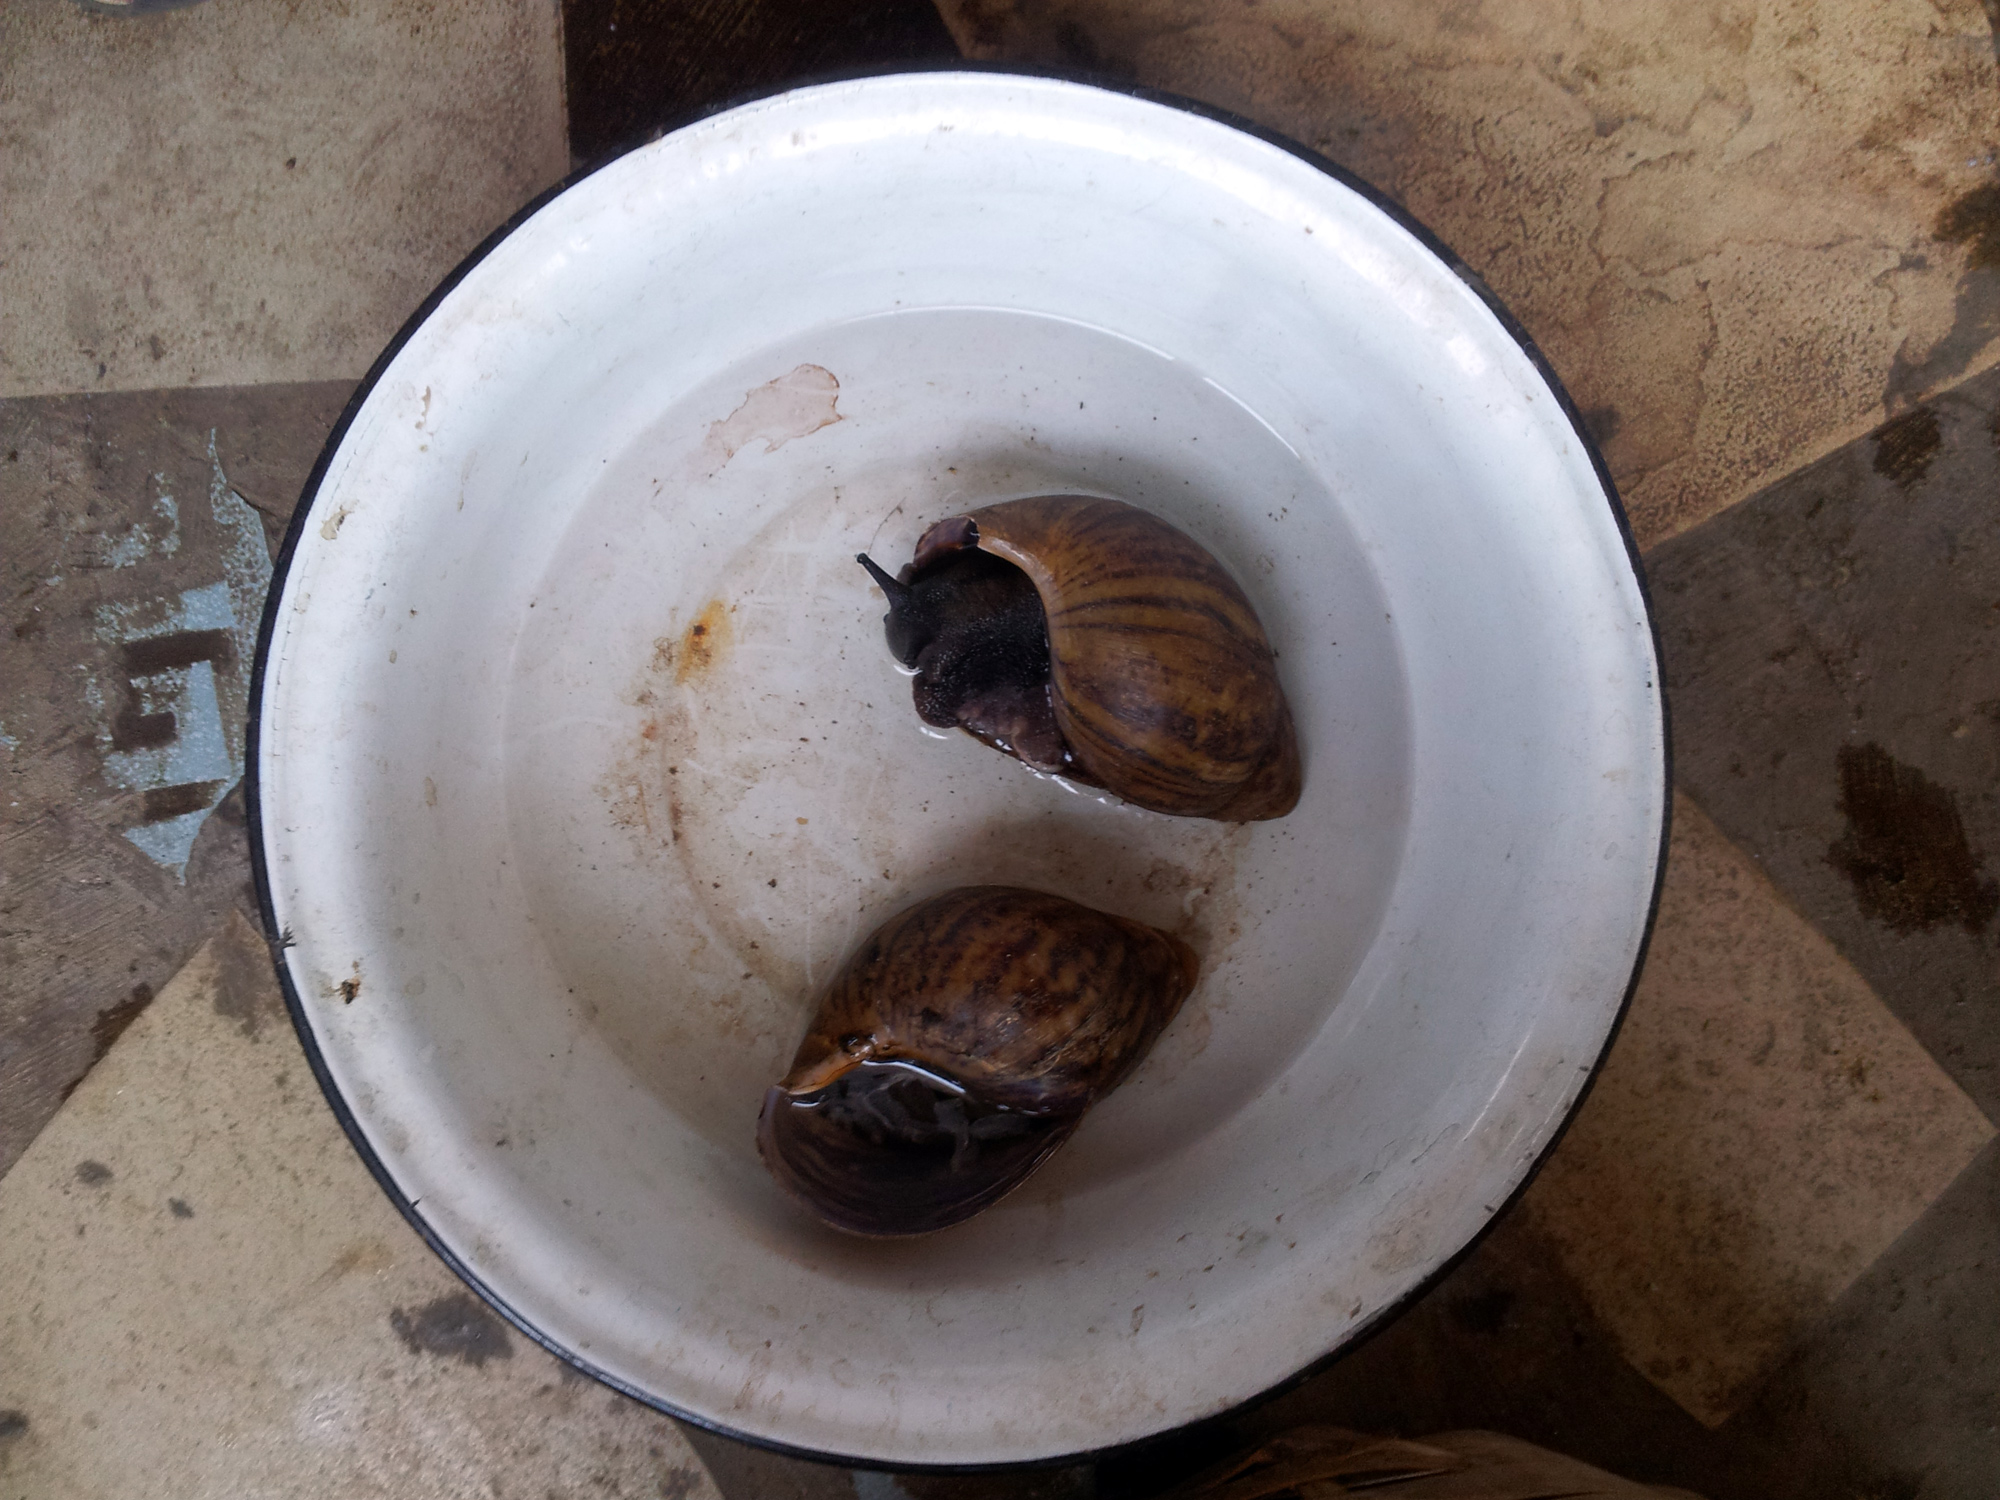 The Yor. ìgbín, snail, is a very common food in Yorùbáland and offered to Orisha like Obatala. ©Orisha Image